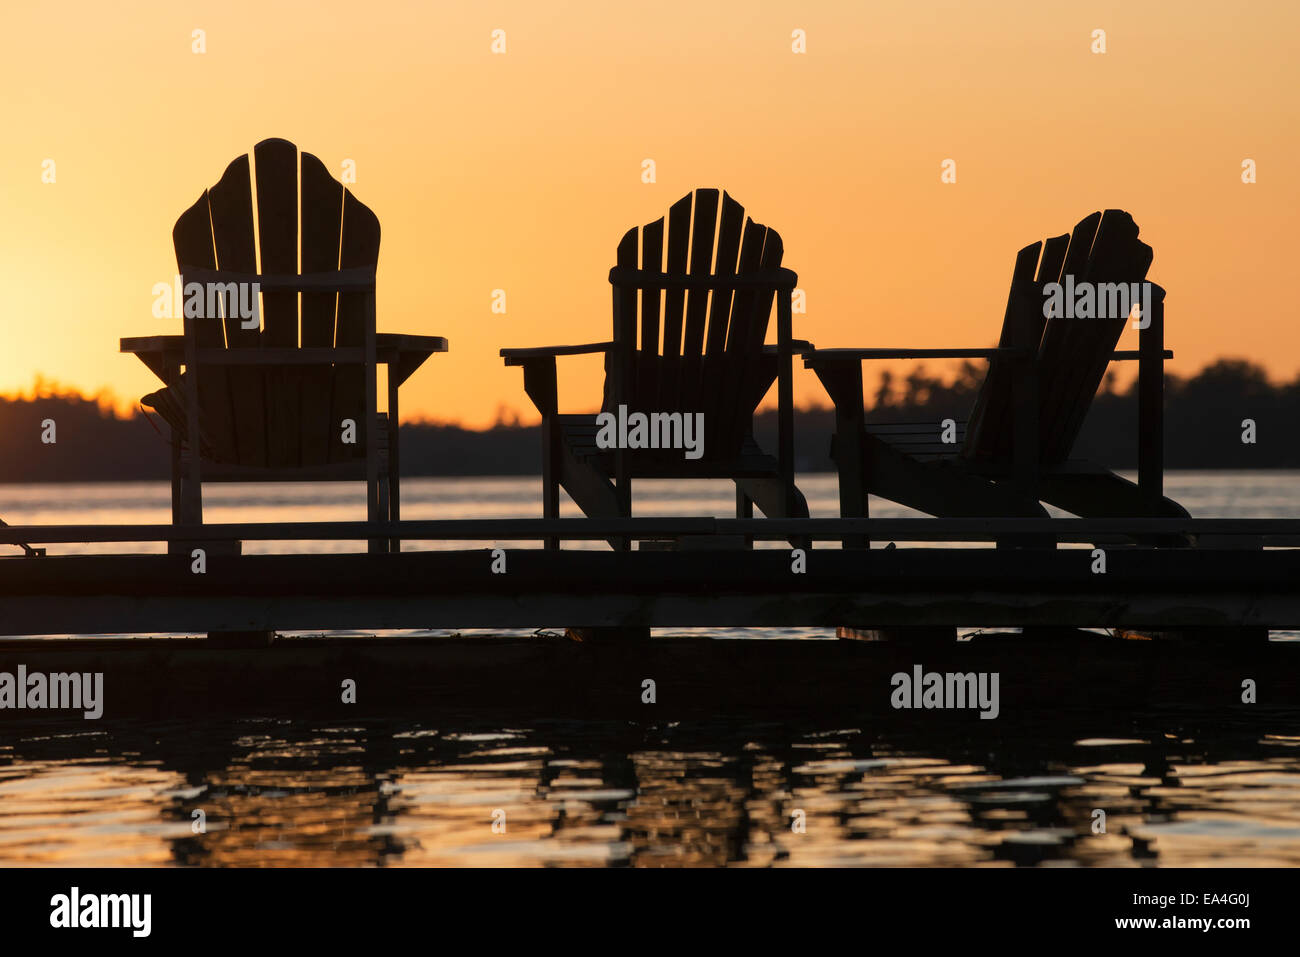 Silhouette of three adirondack chairs on a dock at sunset Ontario